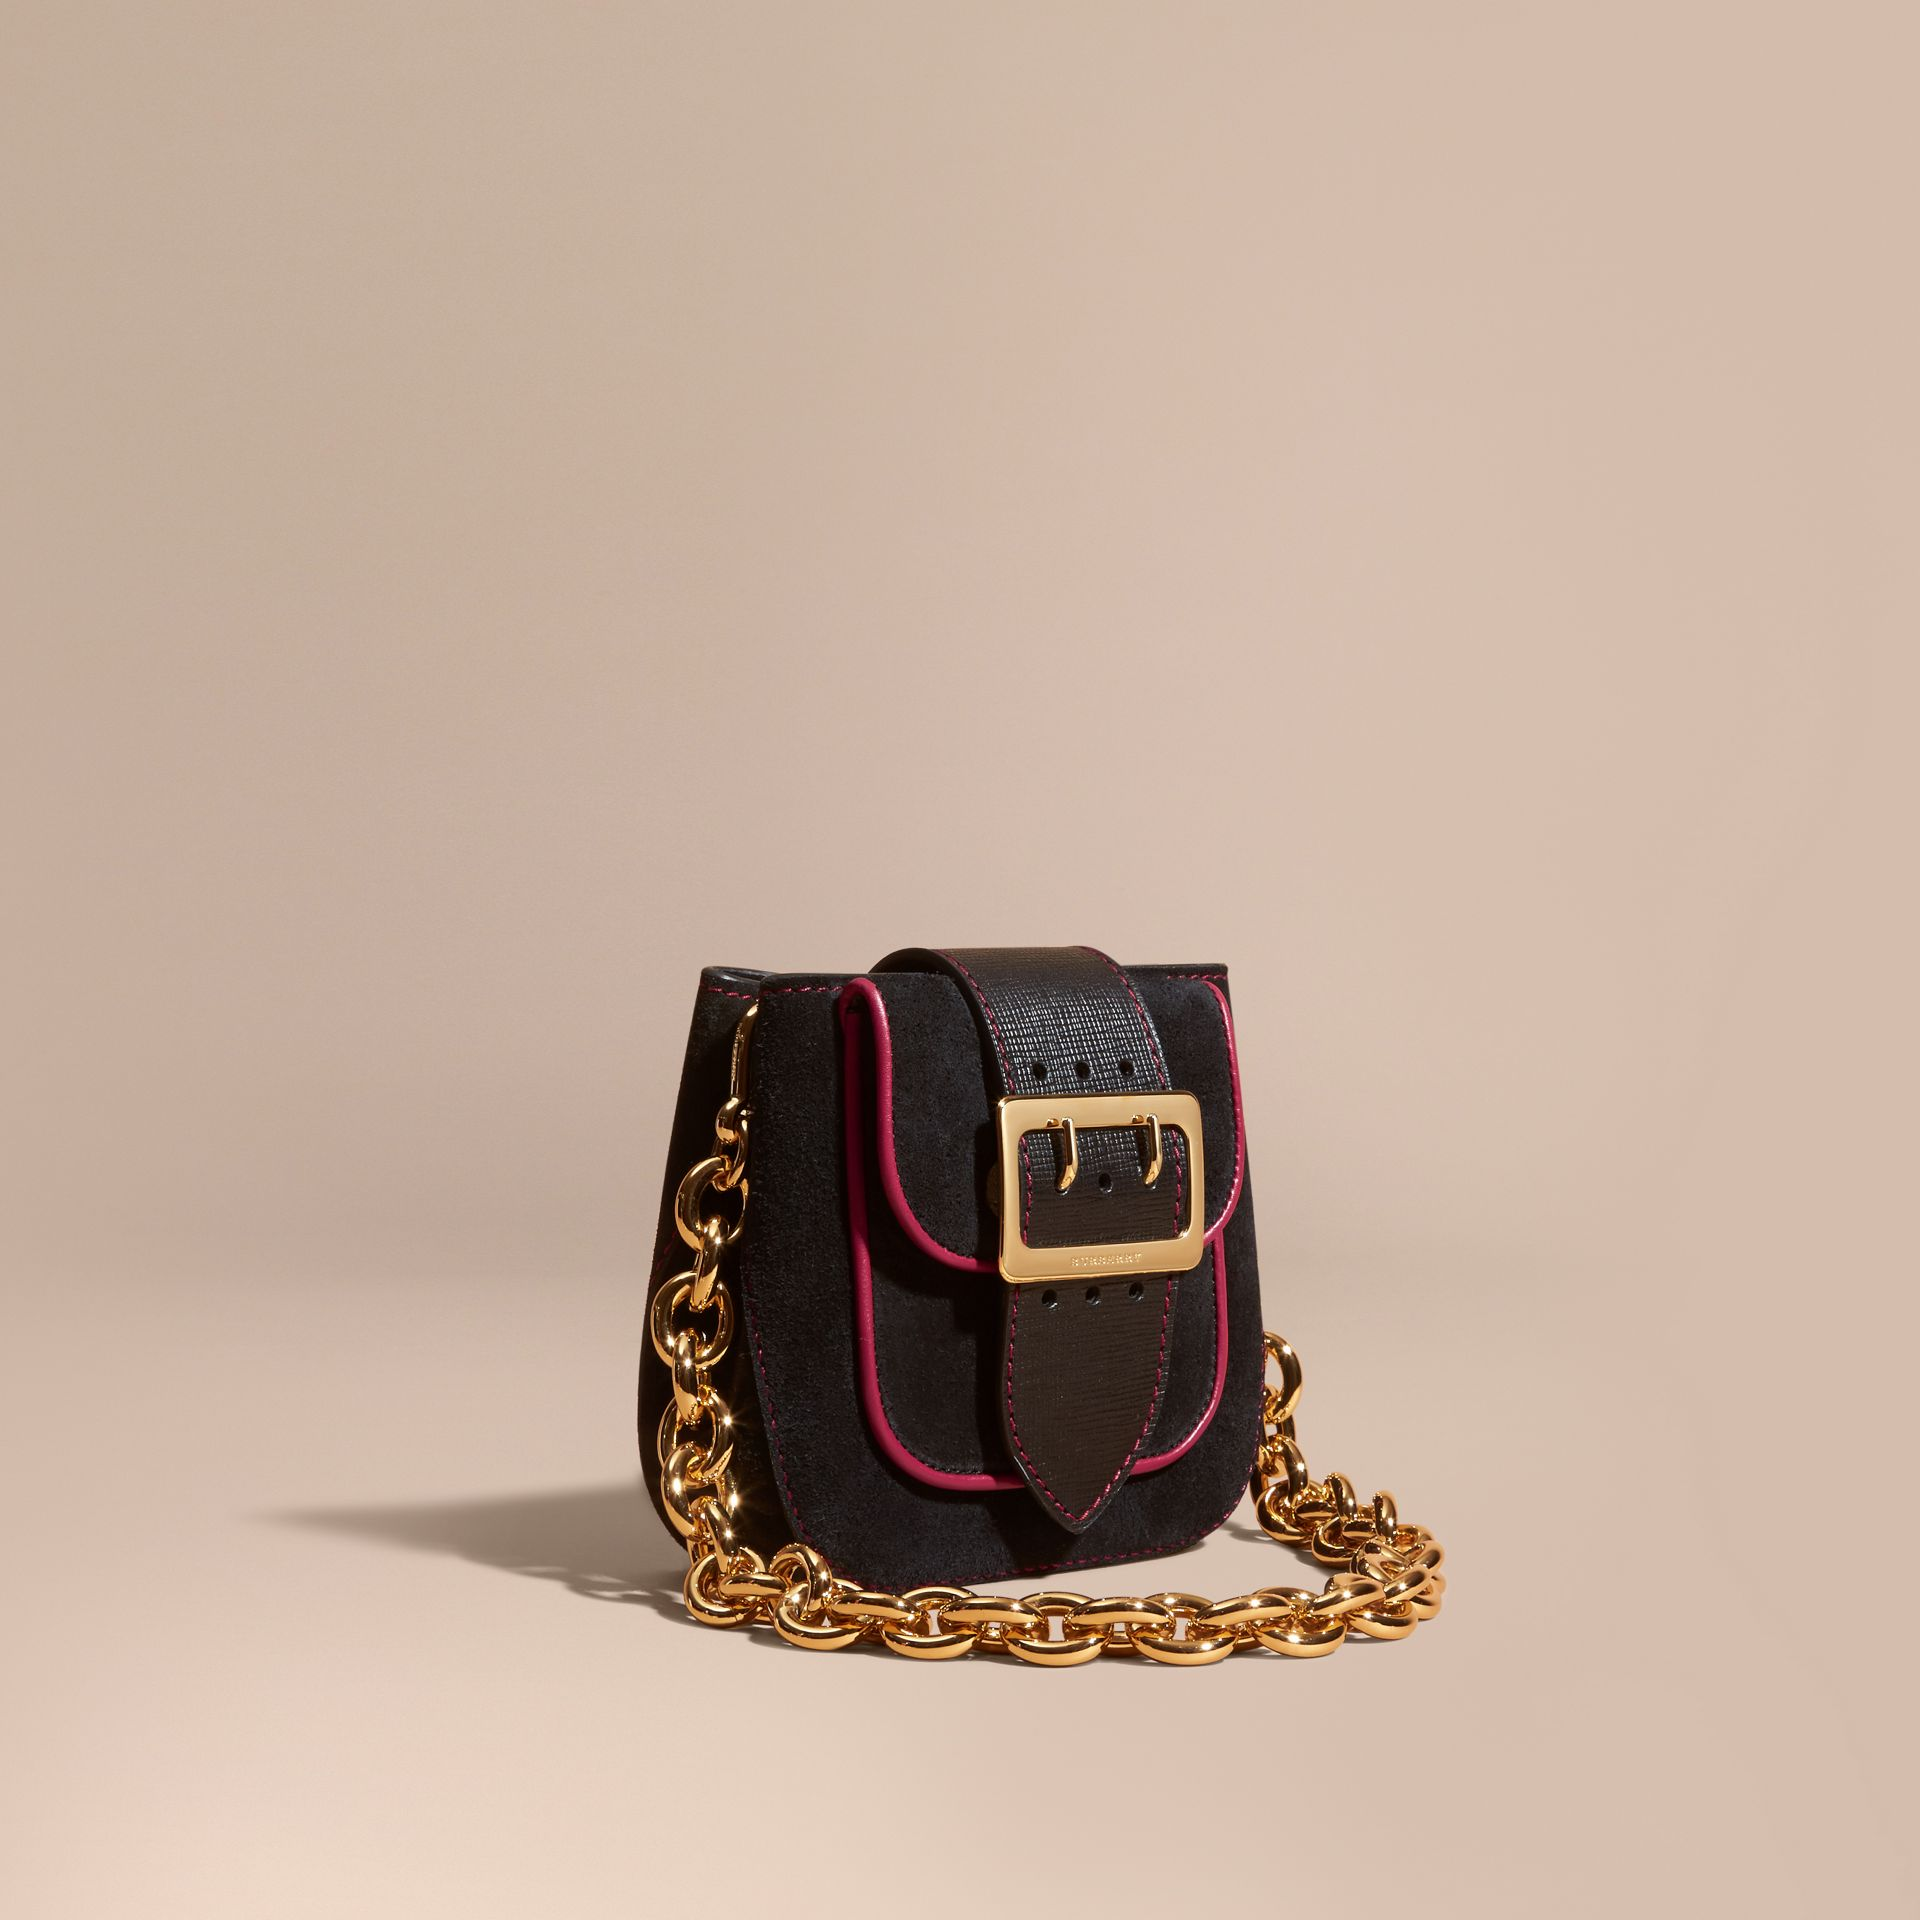 Black The Small Square Buckle Bag in Suede and Leather Black - gallery image 1